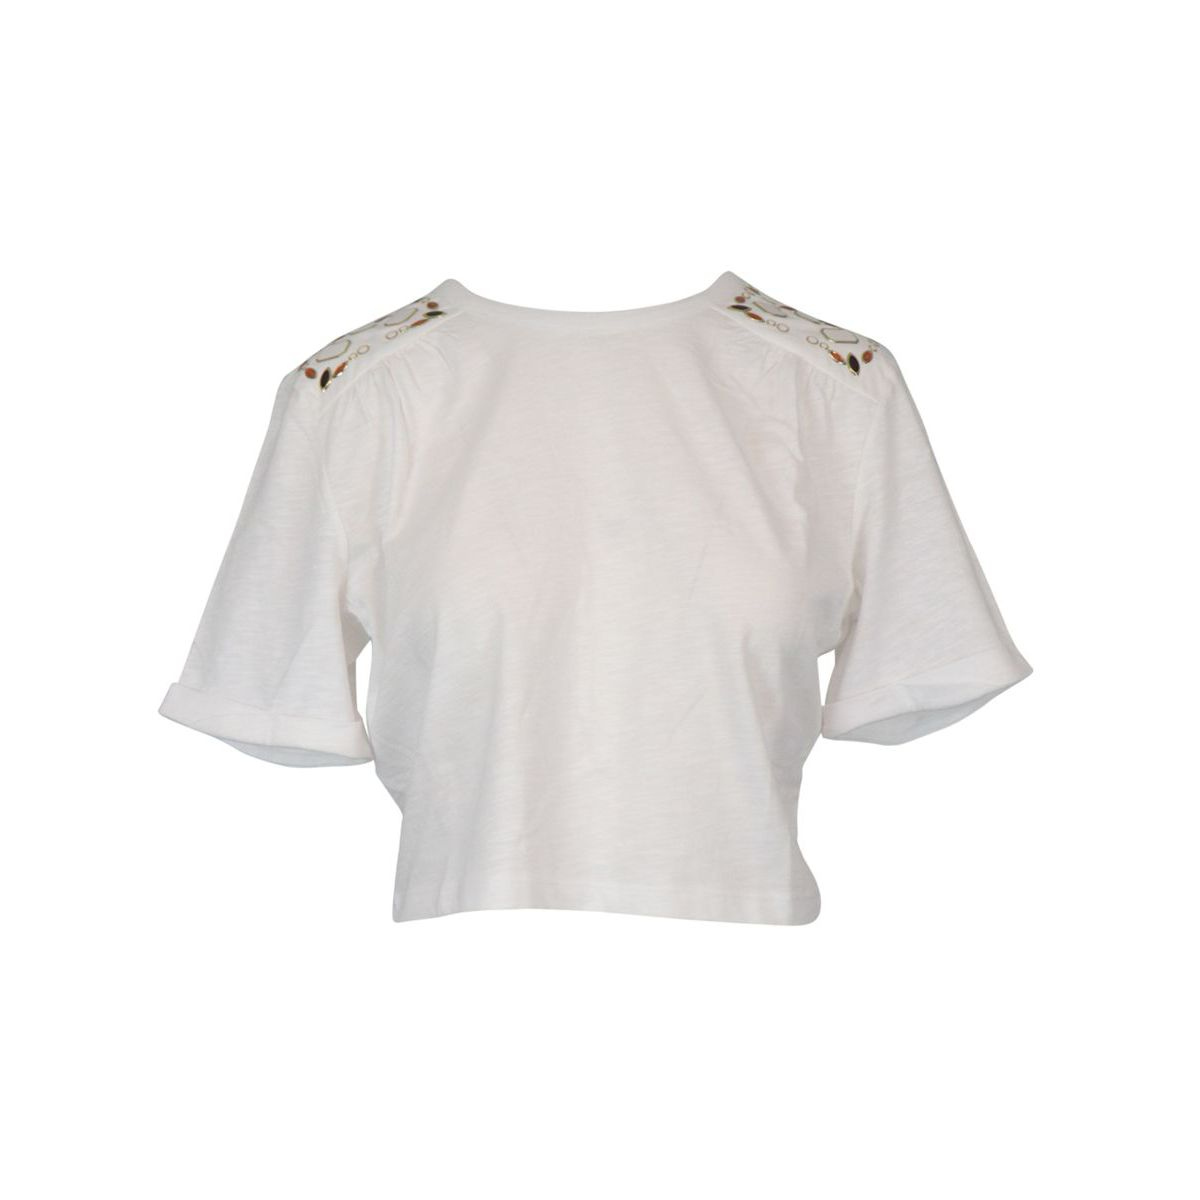 Cropped T-shirt in cotton blend with inserts on the shoulders White Patrizia Pepe